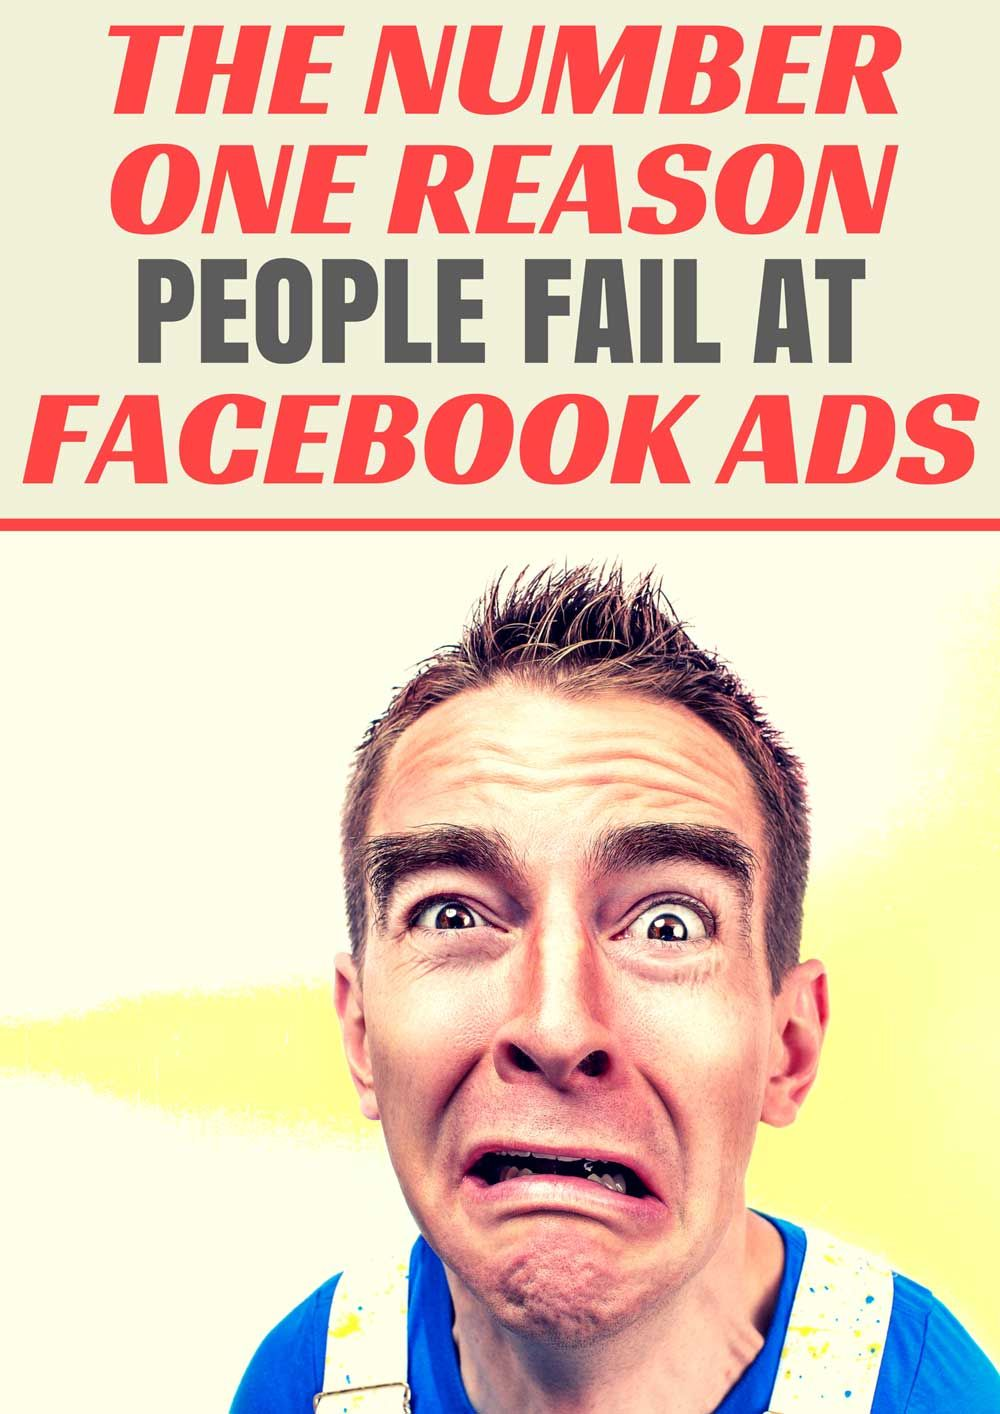 There are many reasons people fail at Facebook ads, but the number one reason is perhaps not what you think .Take a look at this article, which not only explains what it is, but how to avoid it and finally have some success at it.